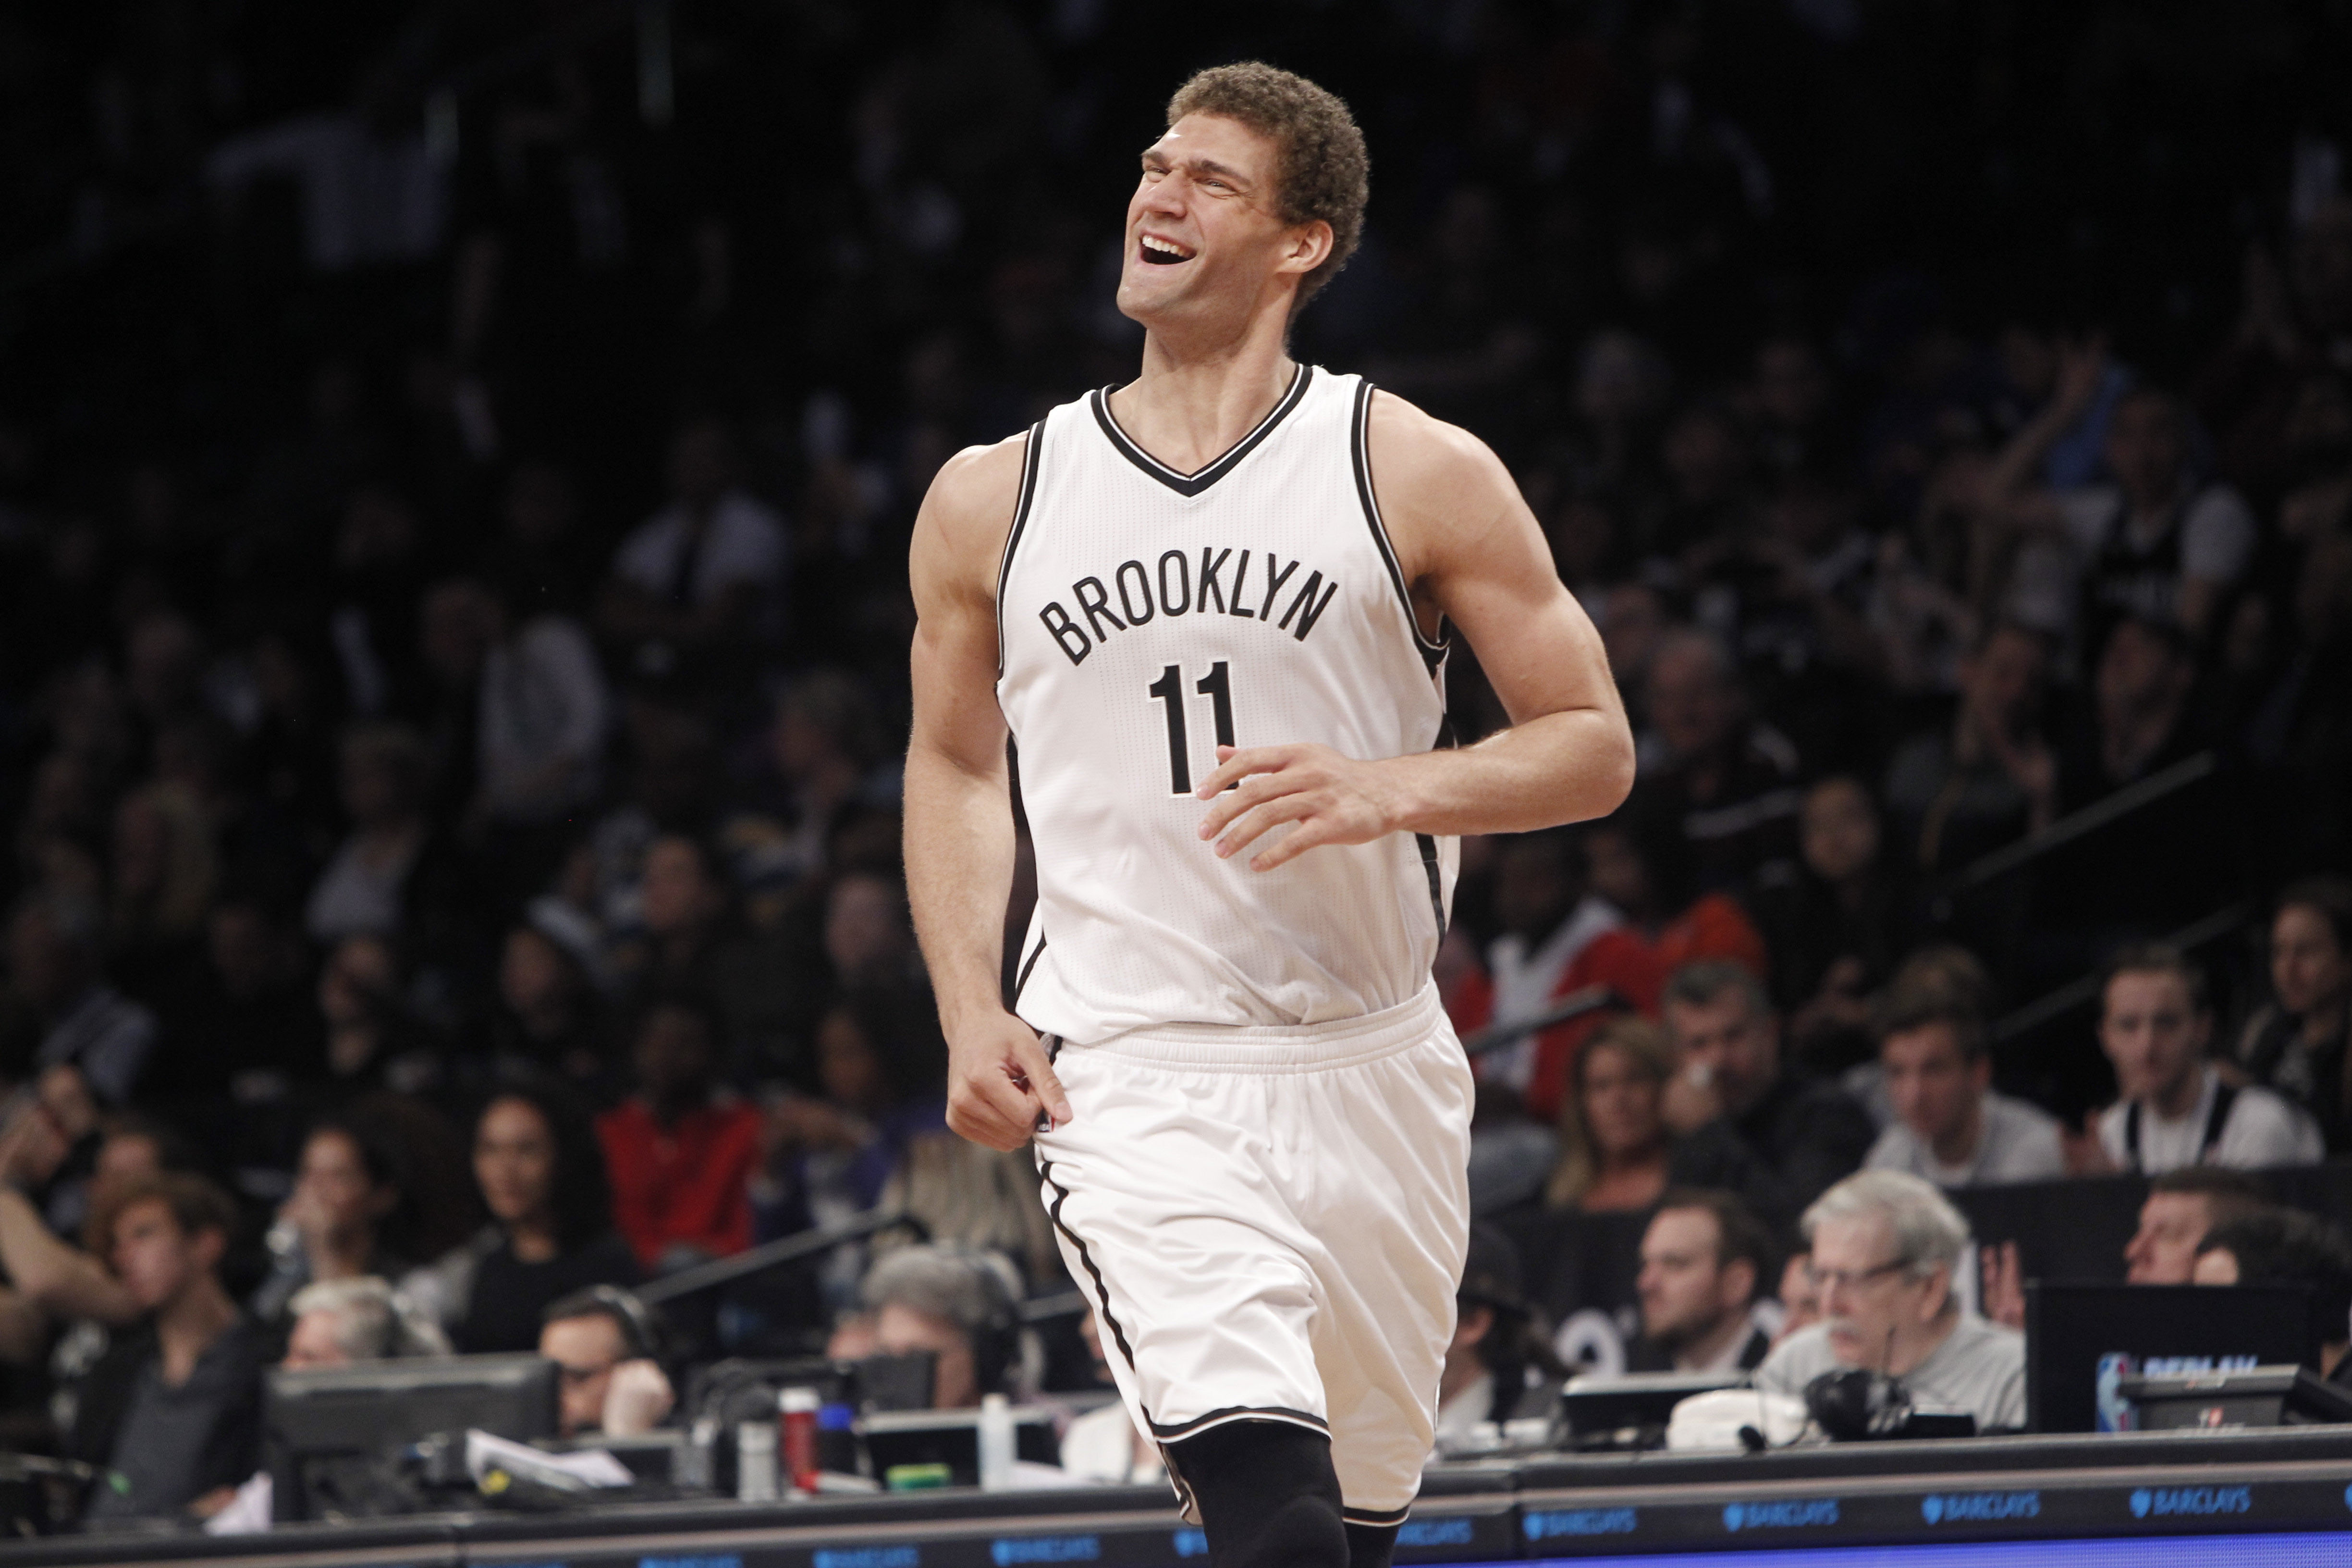 detailed look 87b4f 19ef6 Brooklyn Nets 2016-17 Player Grades: Brook Lopez